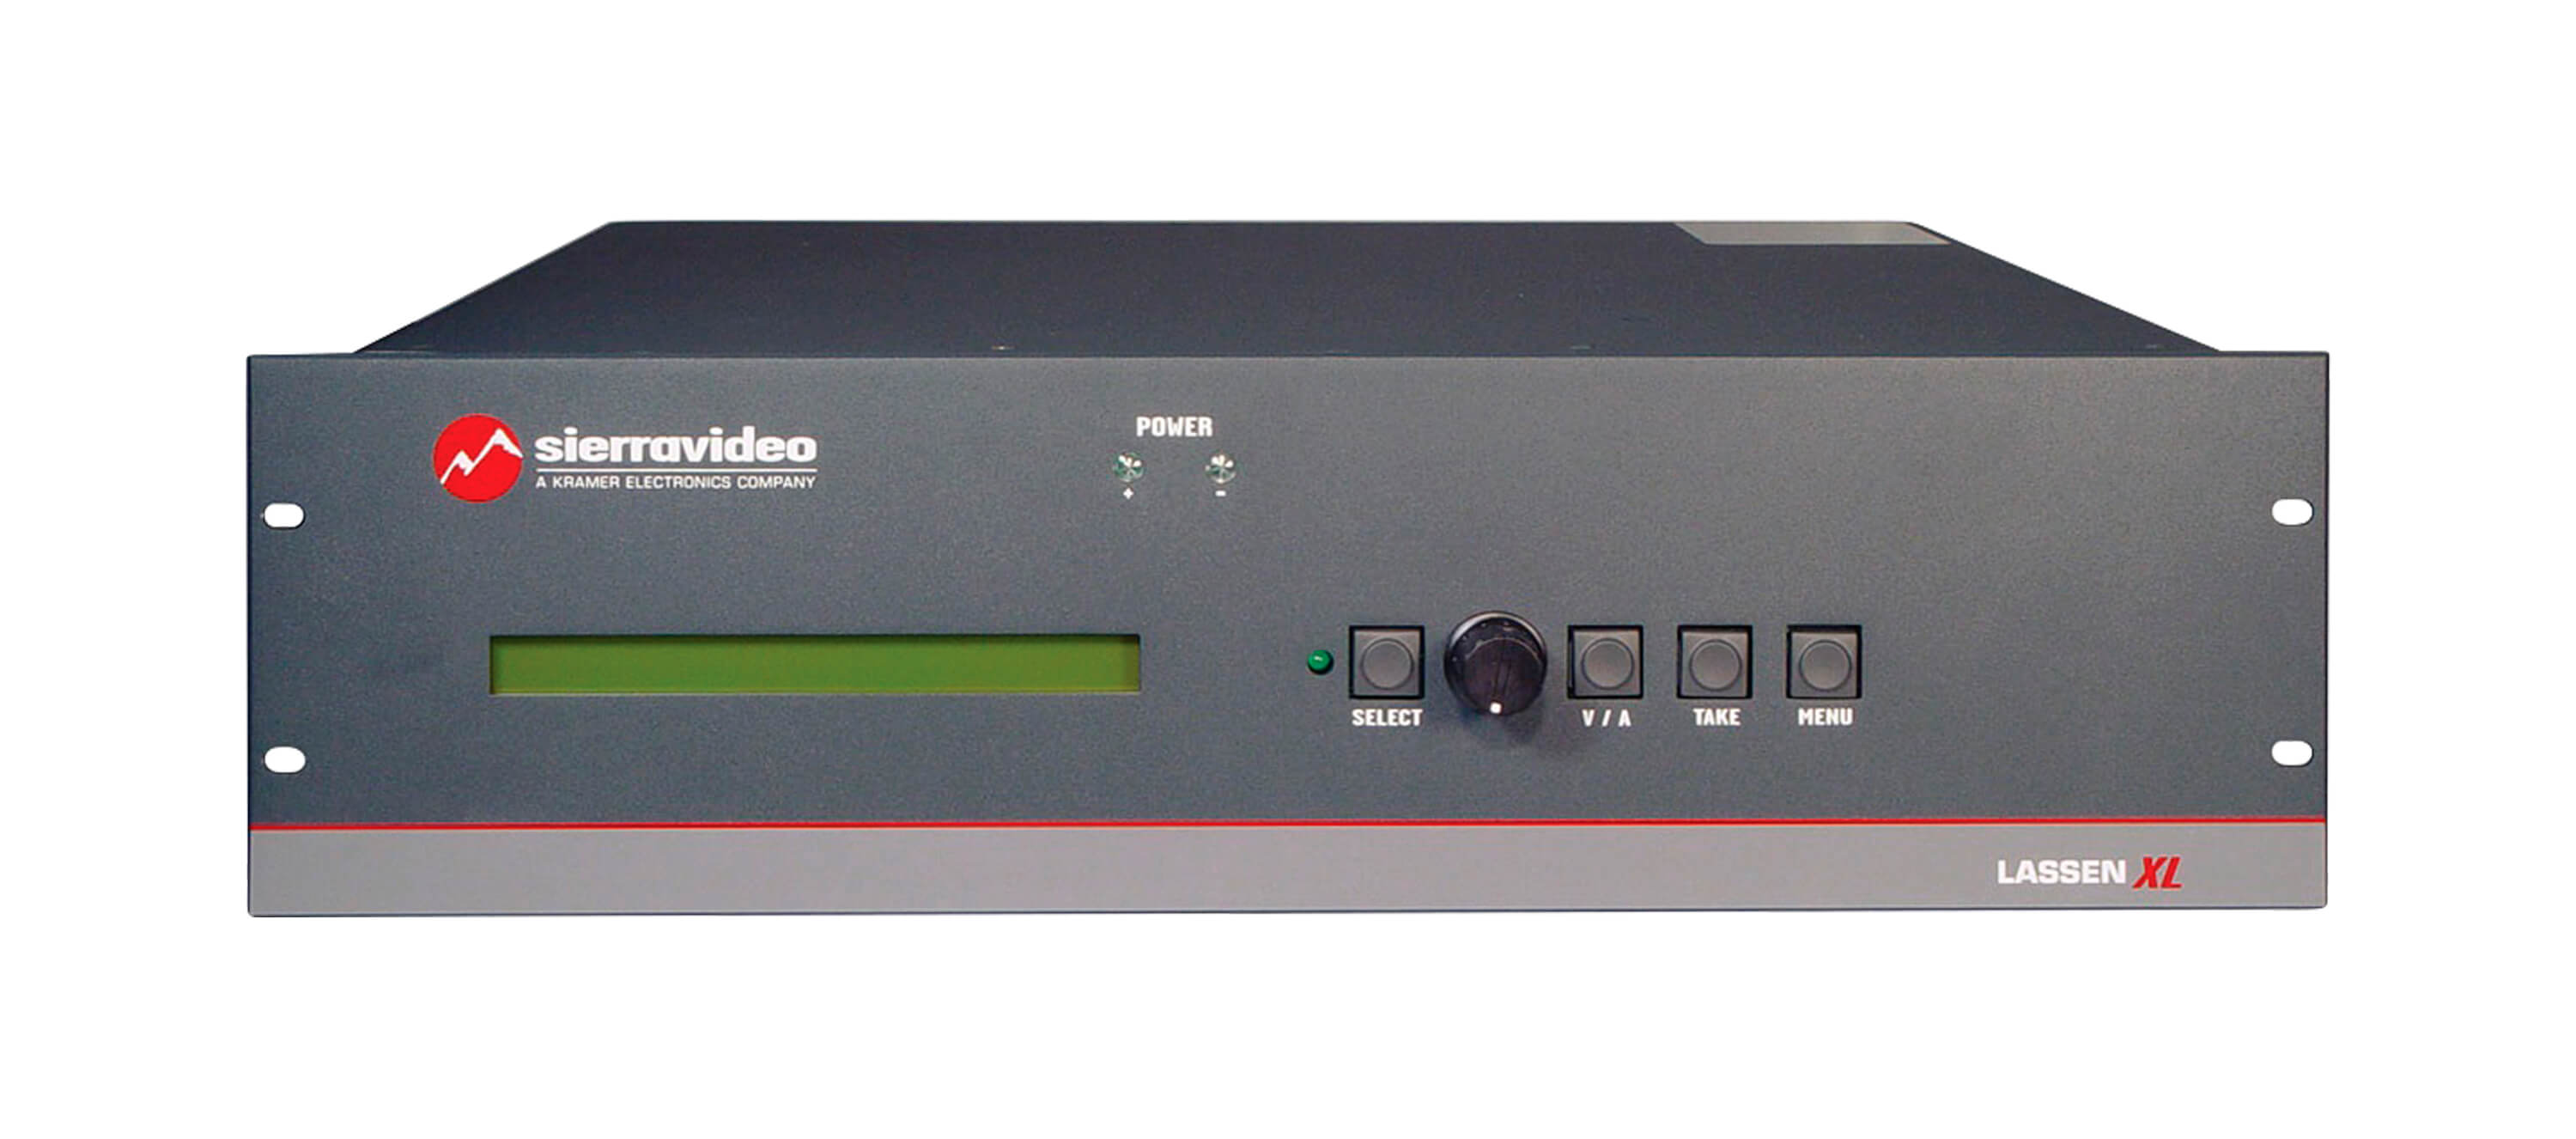 Lassen XL 32x32 Composite Video Router Family